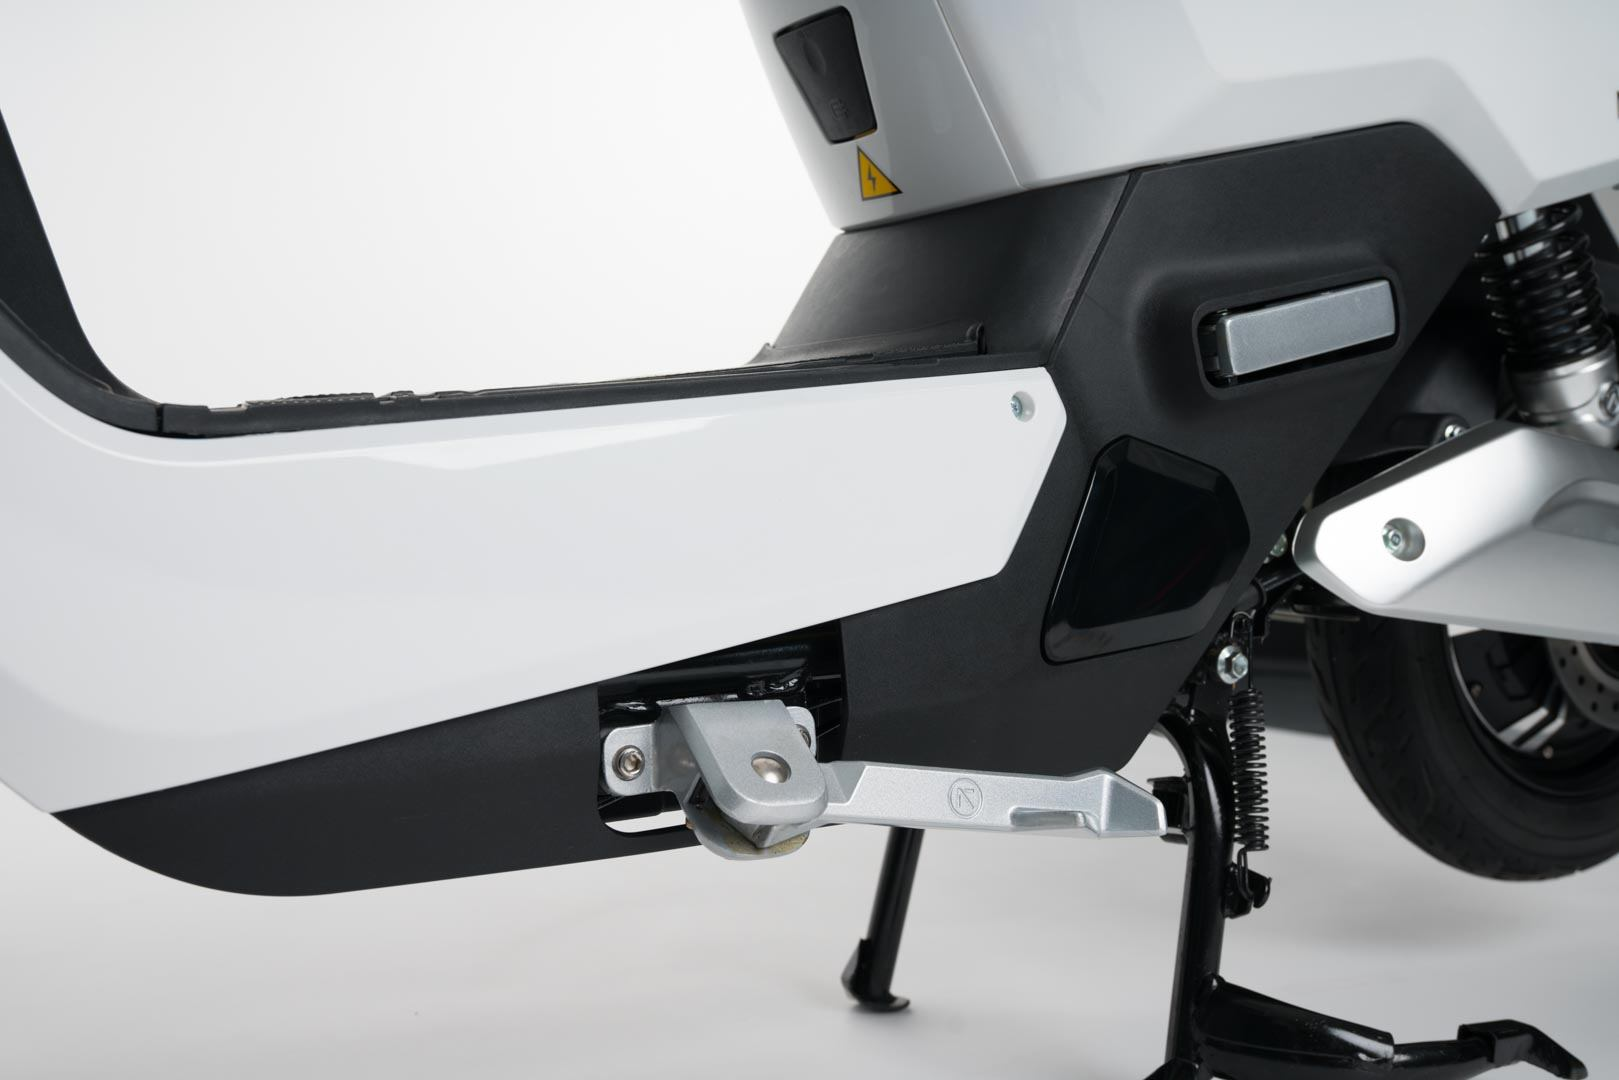 NEXT-NX1-scooter-electrica-pata-lateral